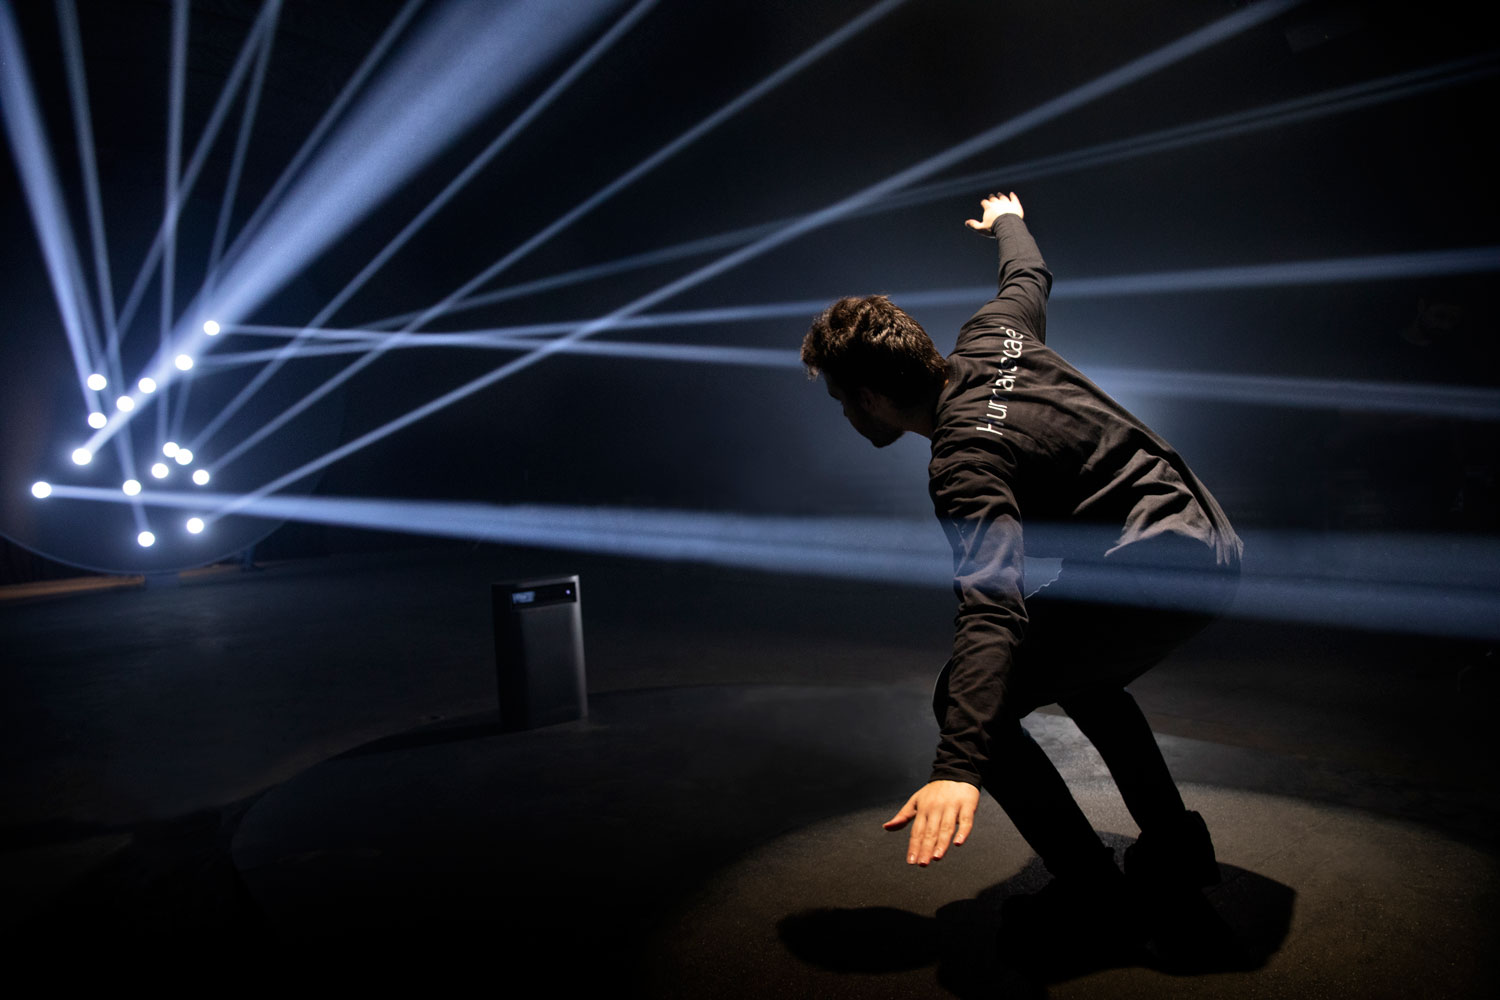 """Best installations seen during milan design week 2019 - Humanscale """"Body In Motion"""""""